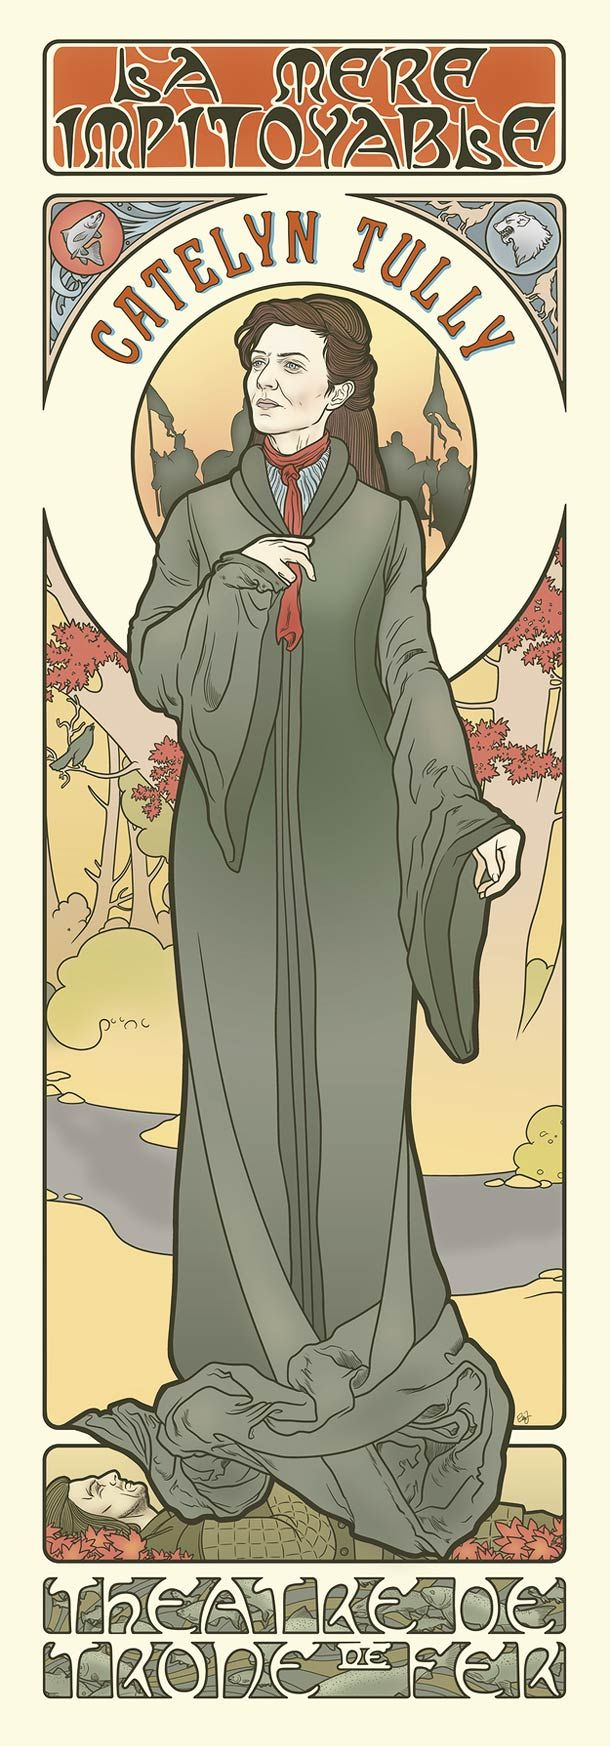 game-of-thrones-art-nouveau-4...Catelyn